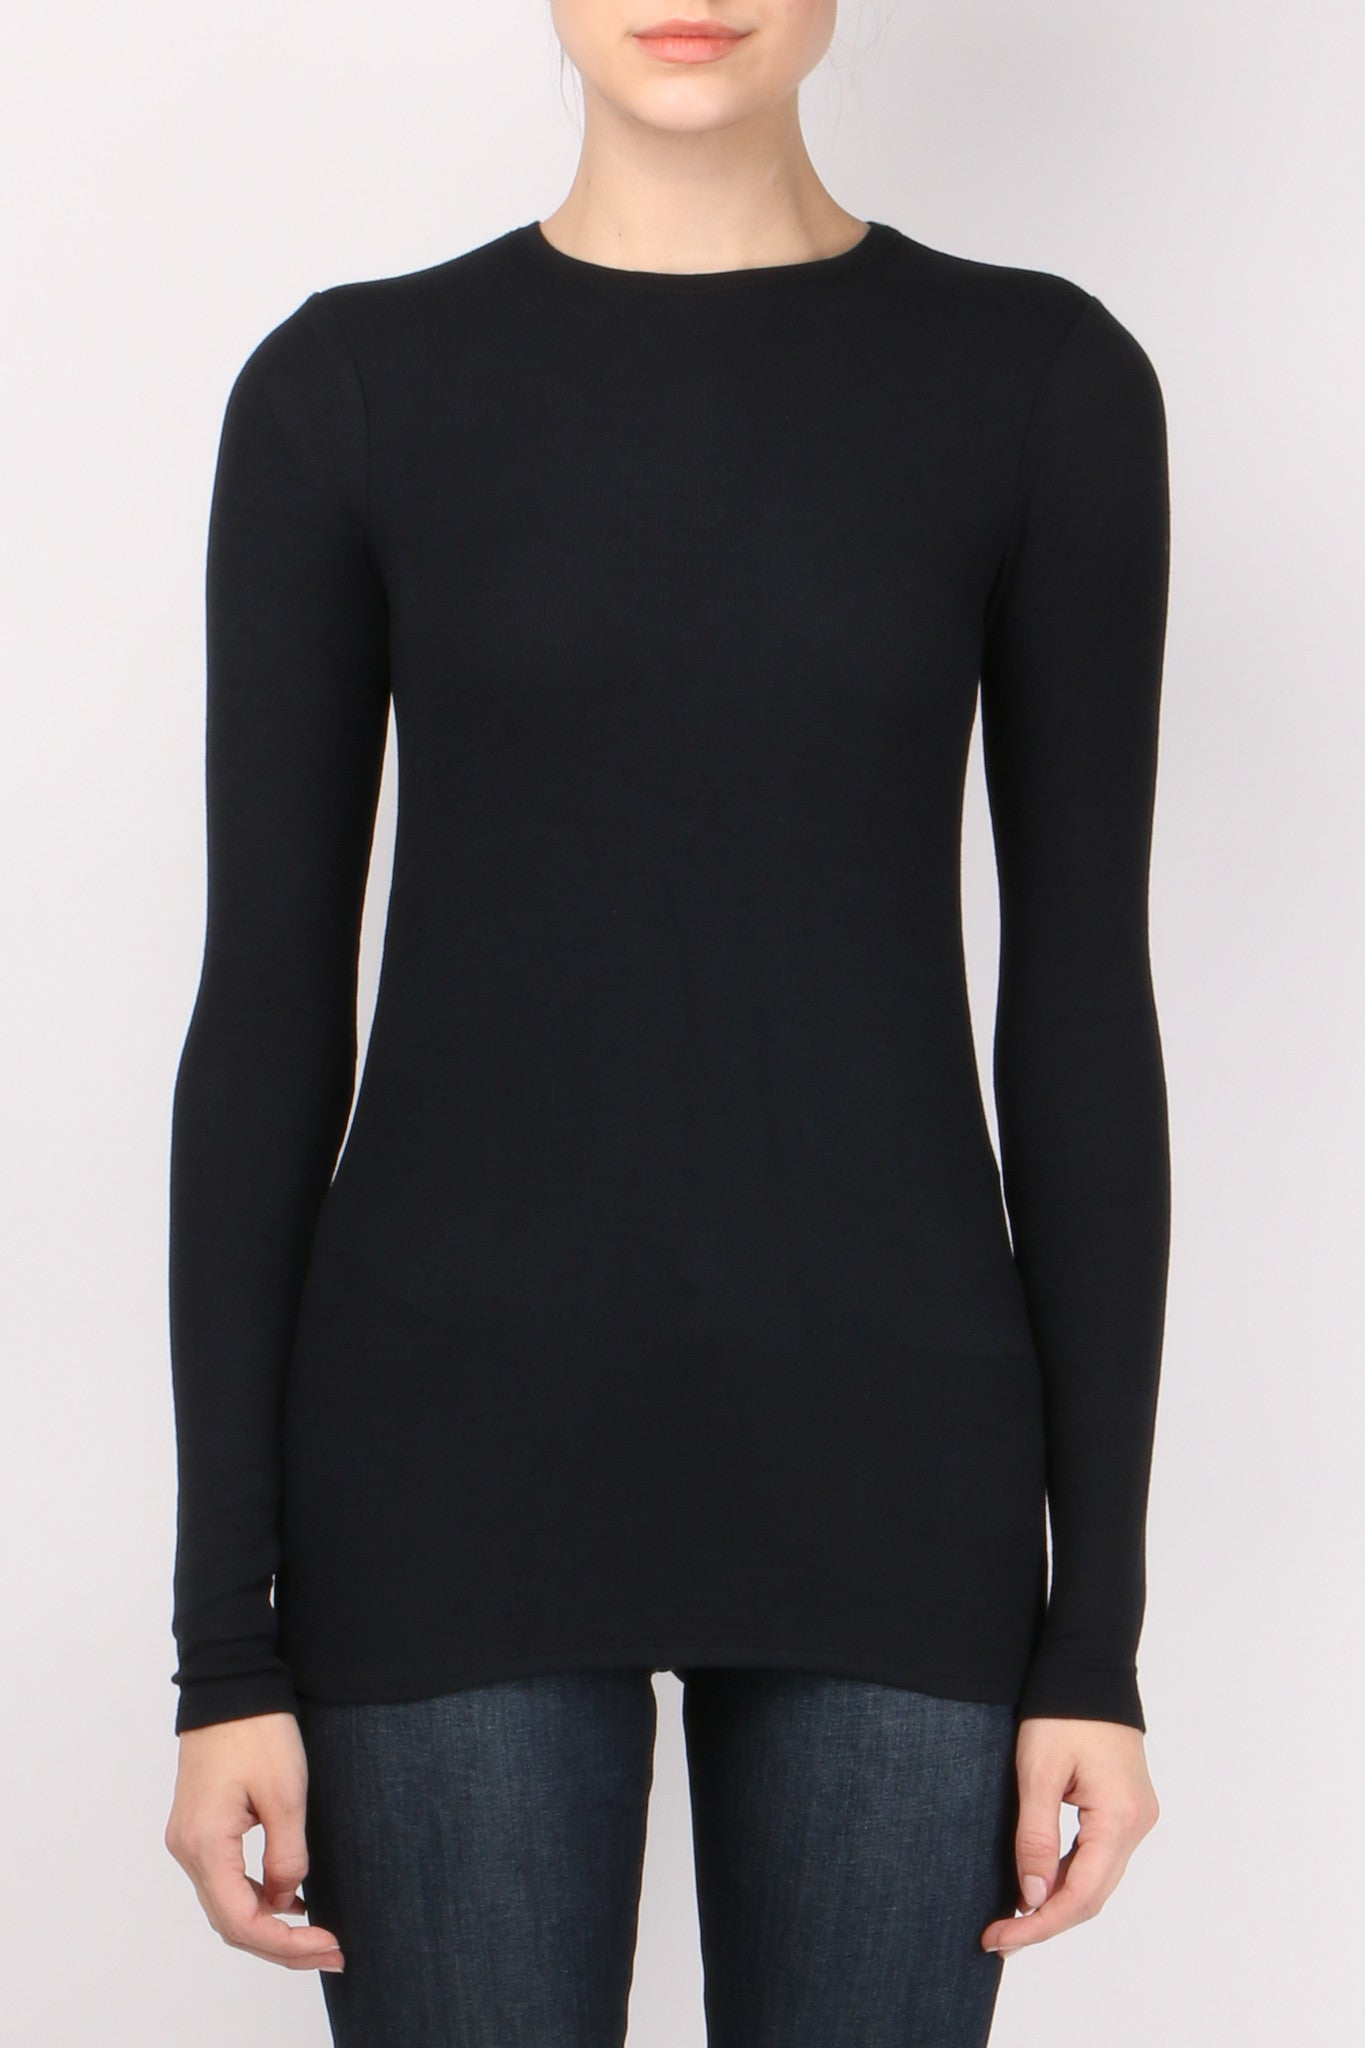 ATM Long Sleeve Rib Crew Black